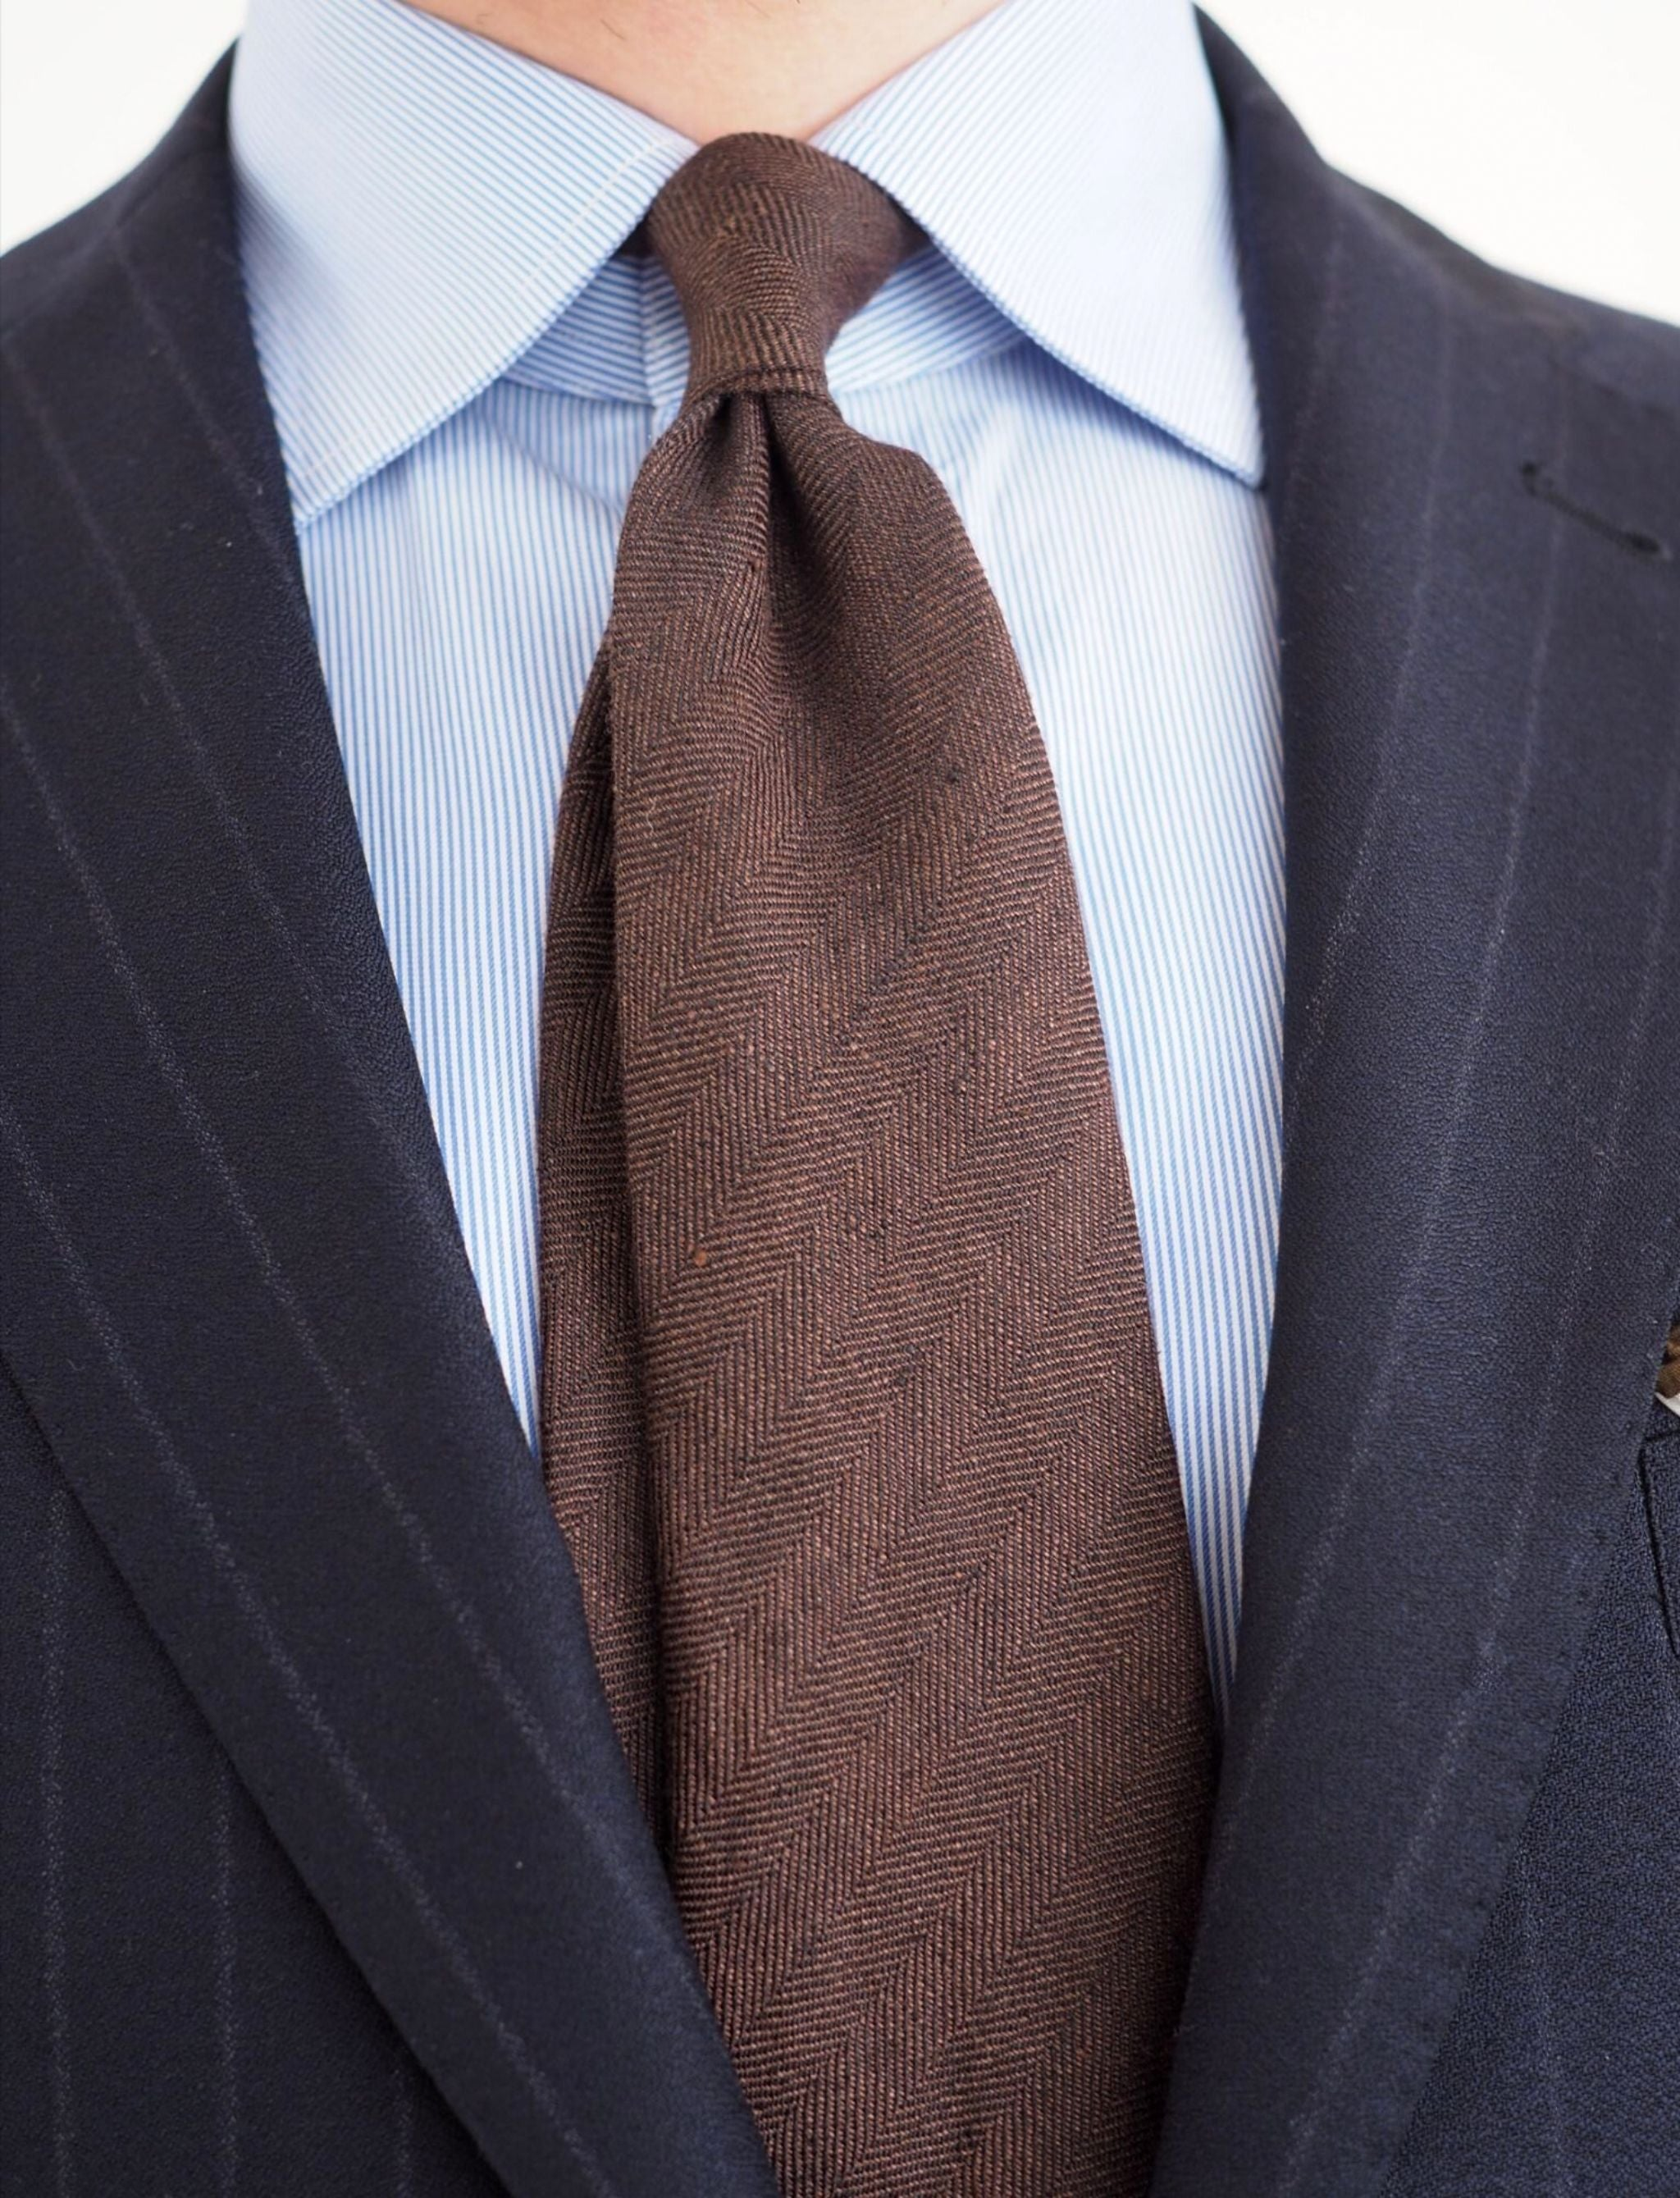 BLue chalk stripe suit with brown tie and double dimple.